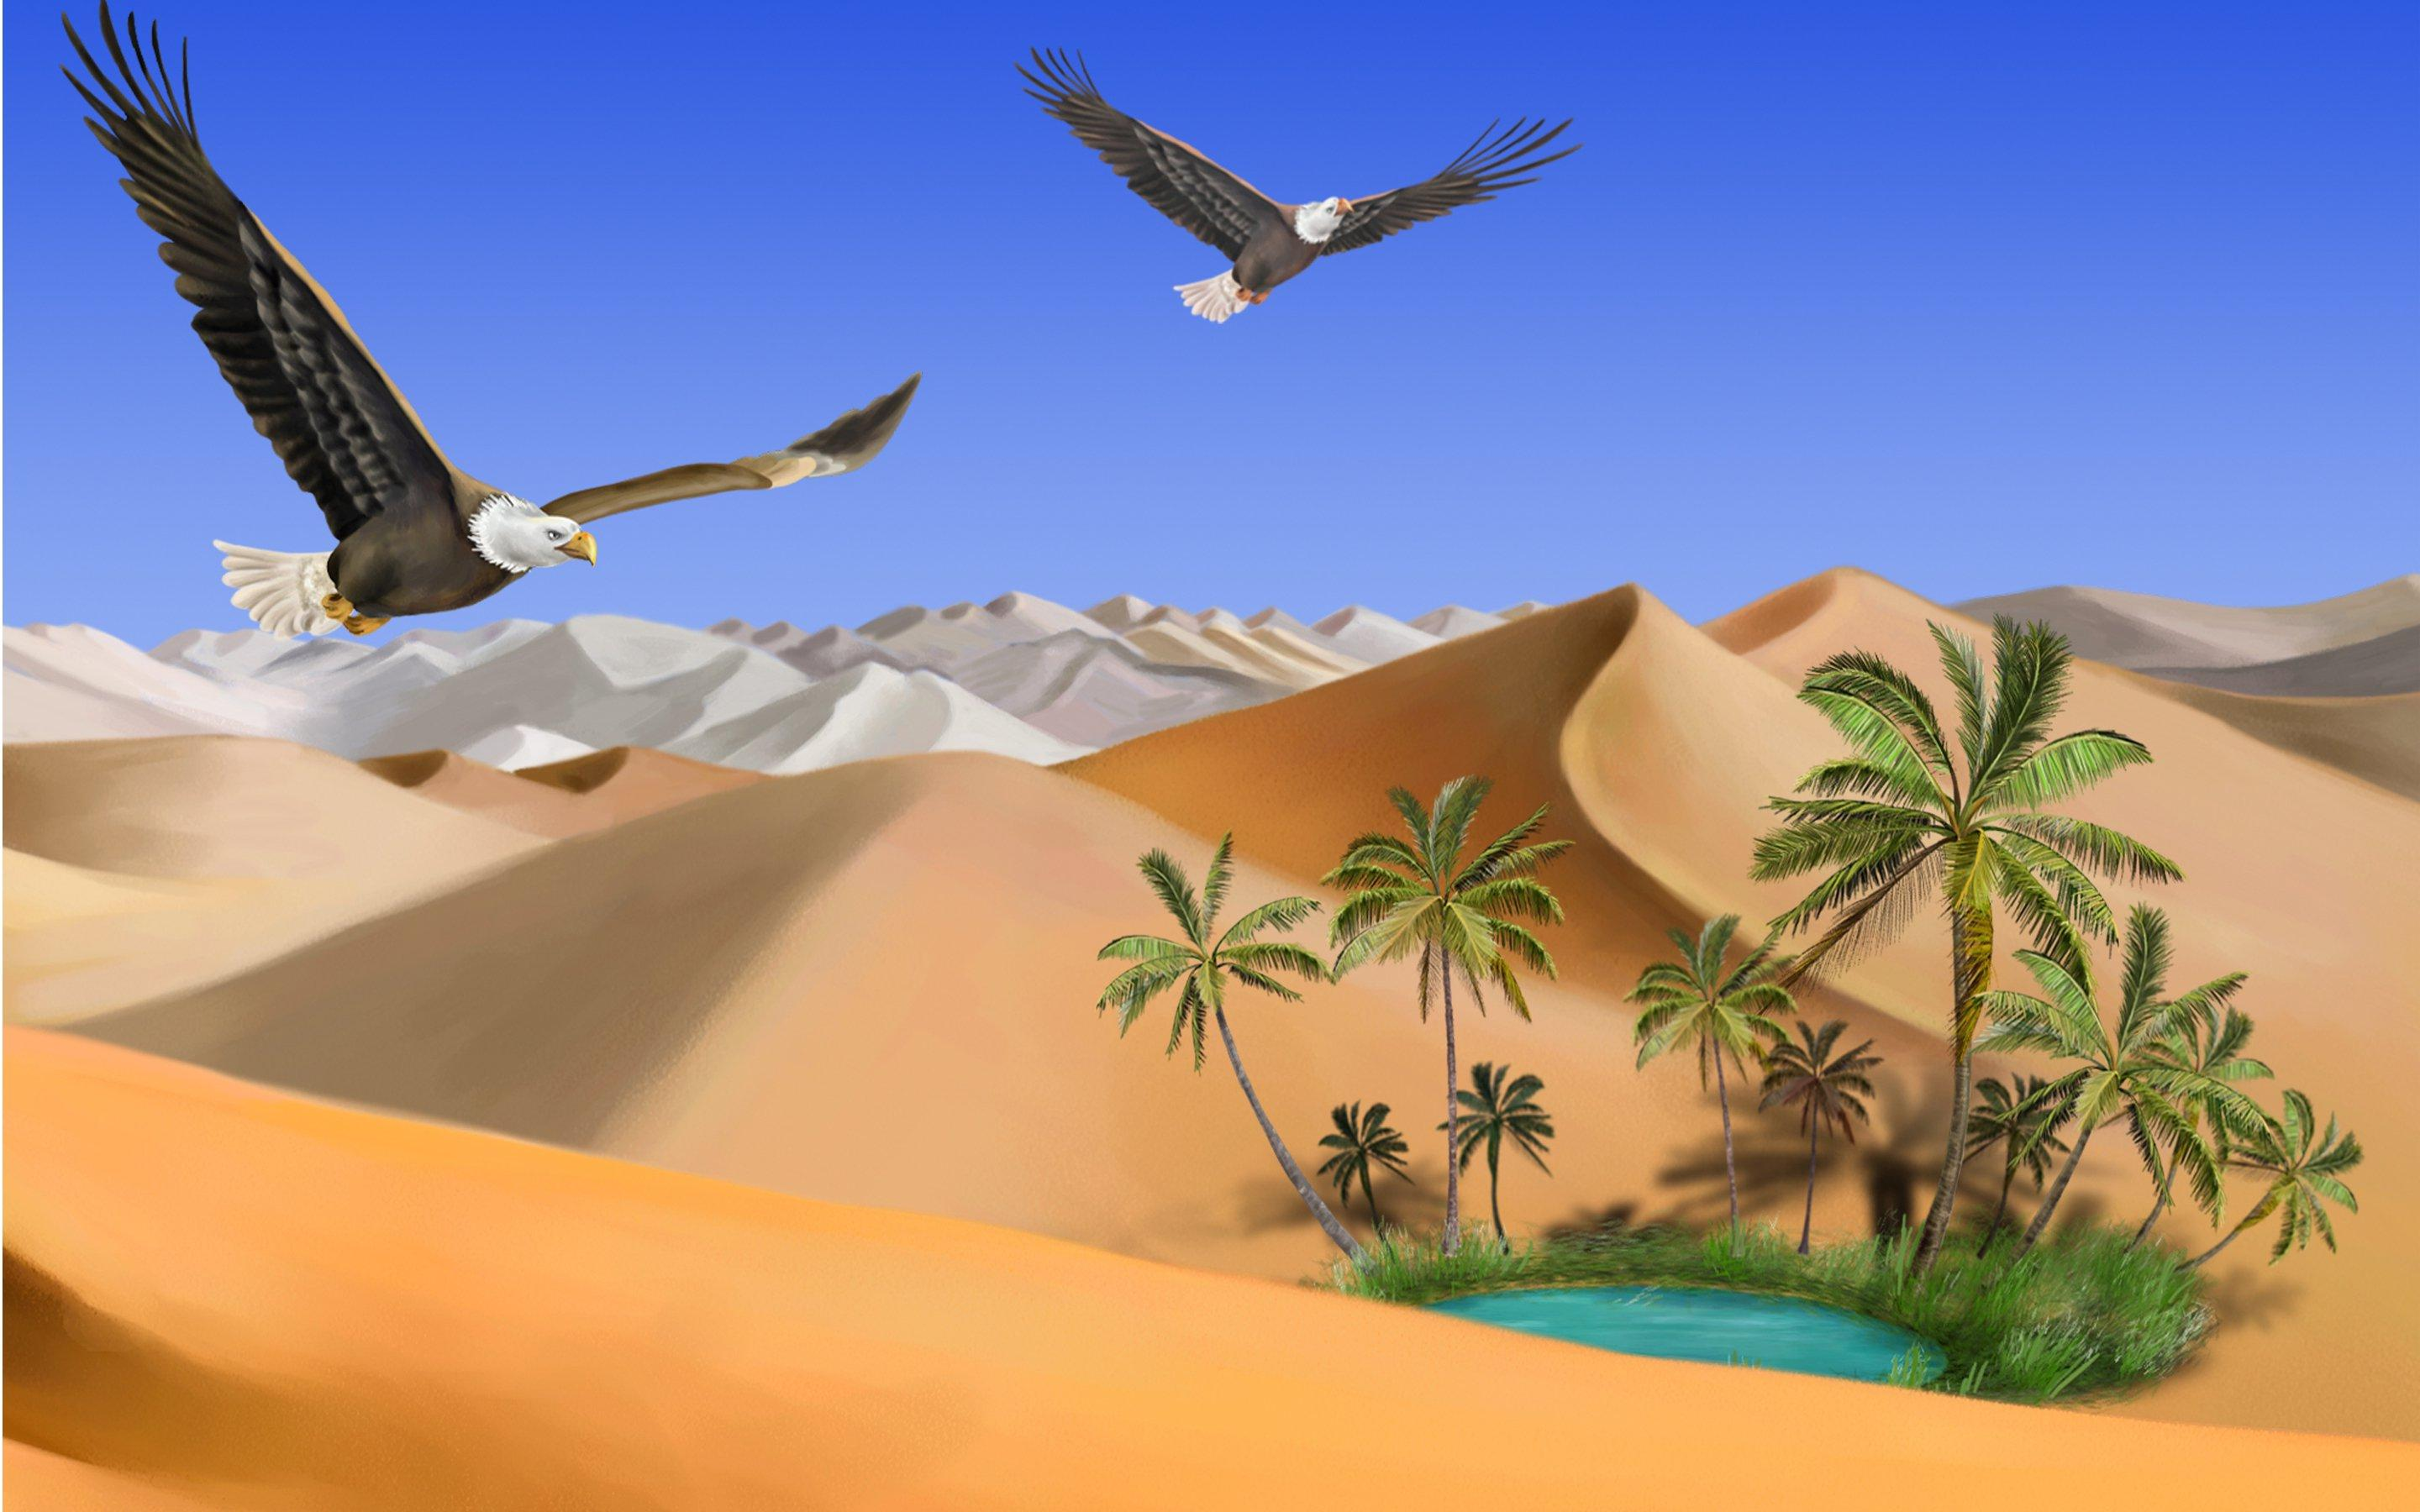 oasis landscape wallpapers archives - photo #5